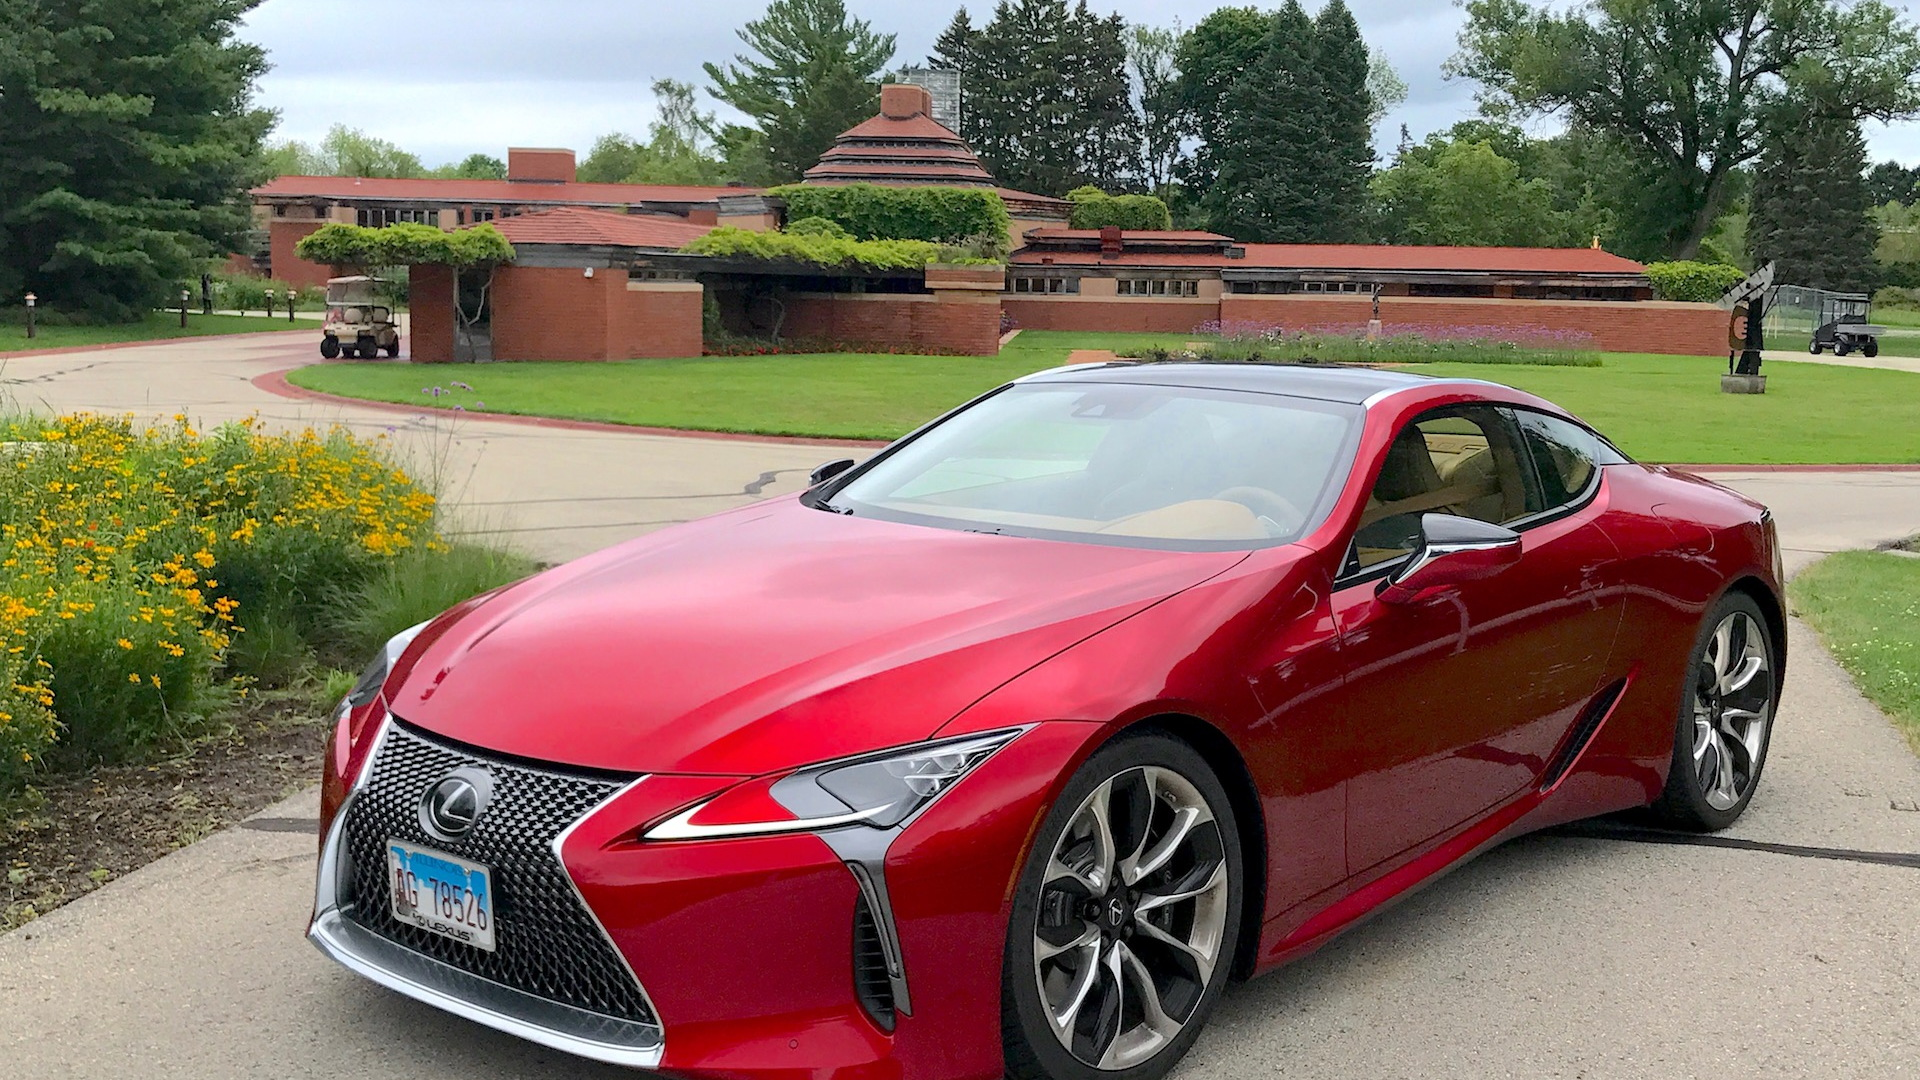 2018 Lexus LC 500 at Wingspread